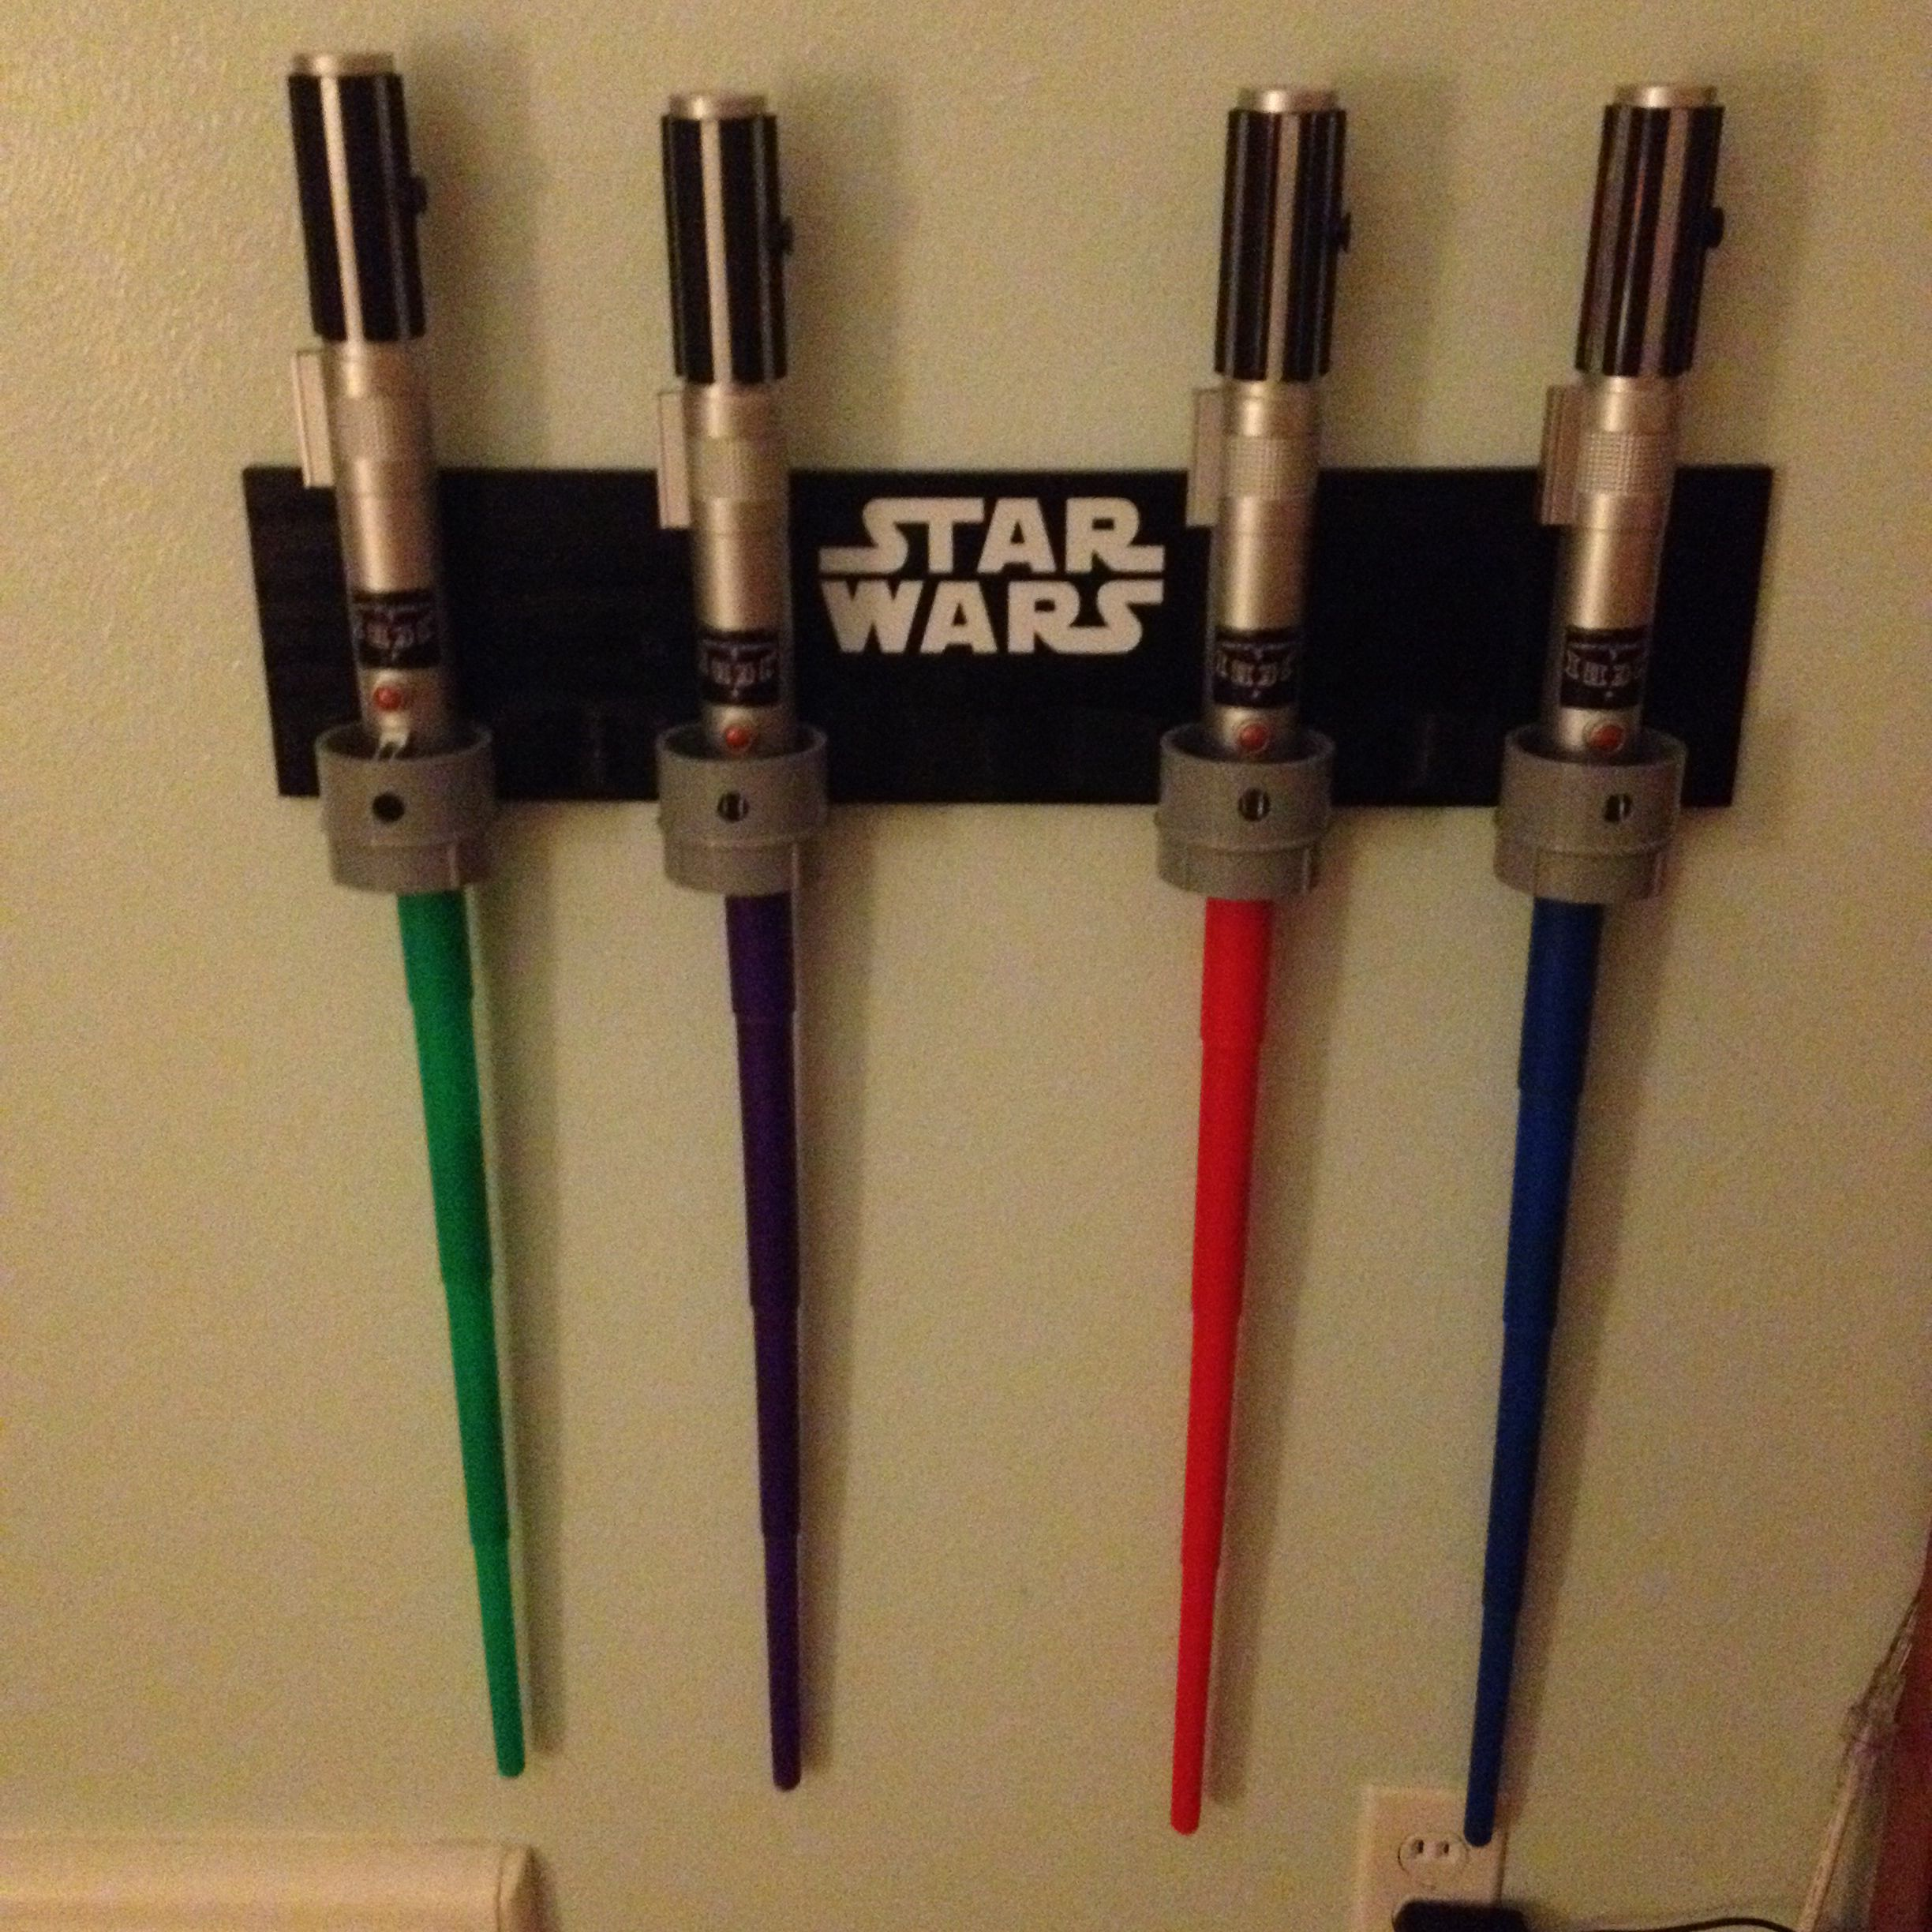 Star Wars Light Saber Holder: Made With Molding And Pipes